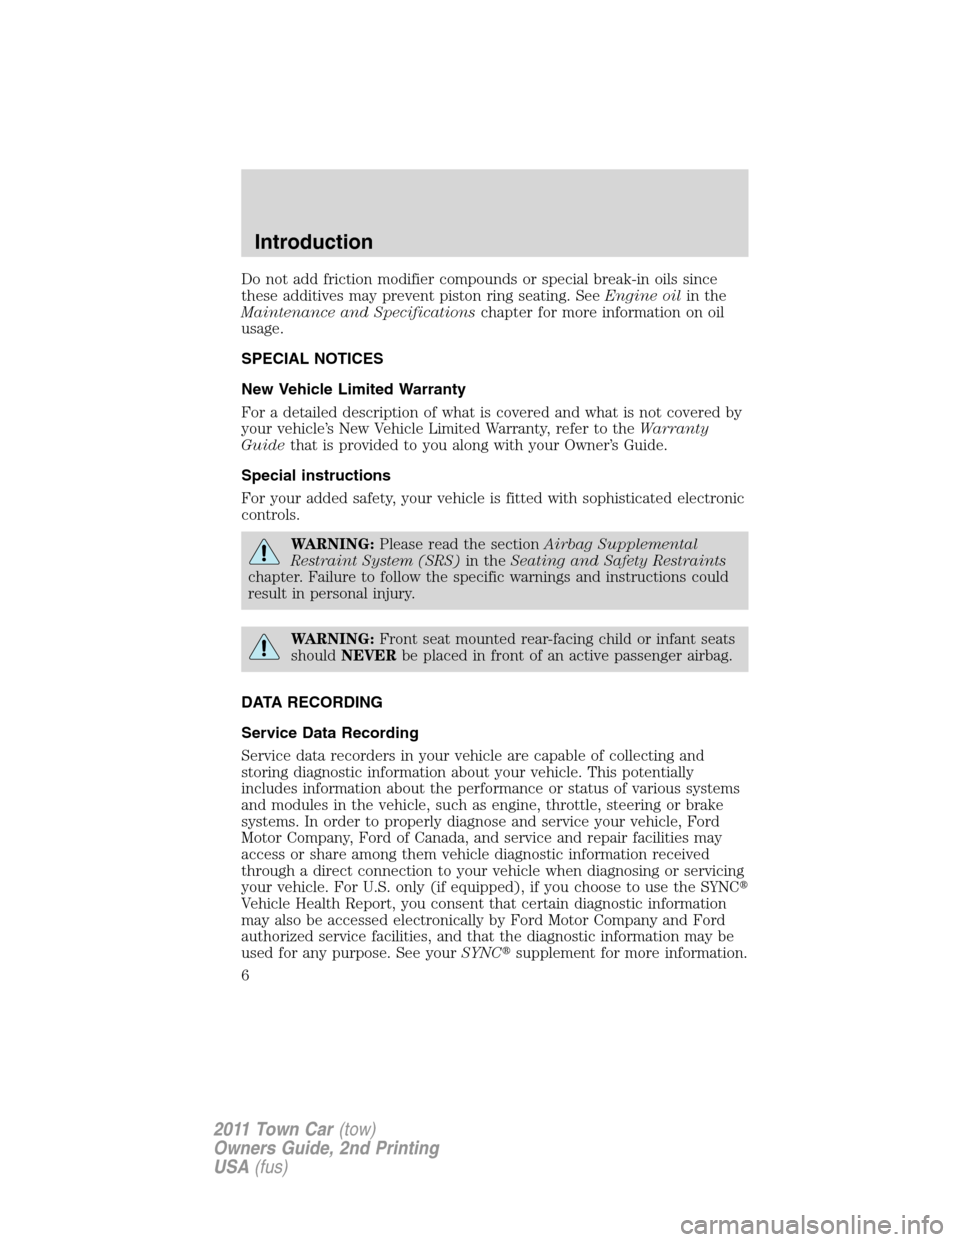 LINCOLN TOWN CAR 2011  Owners Manual, Page 6